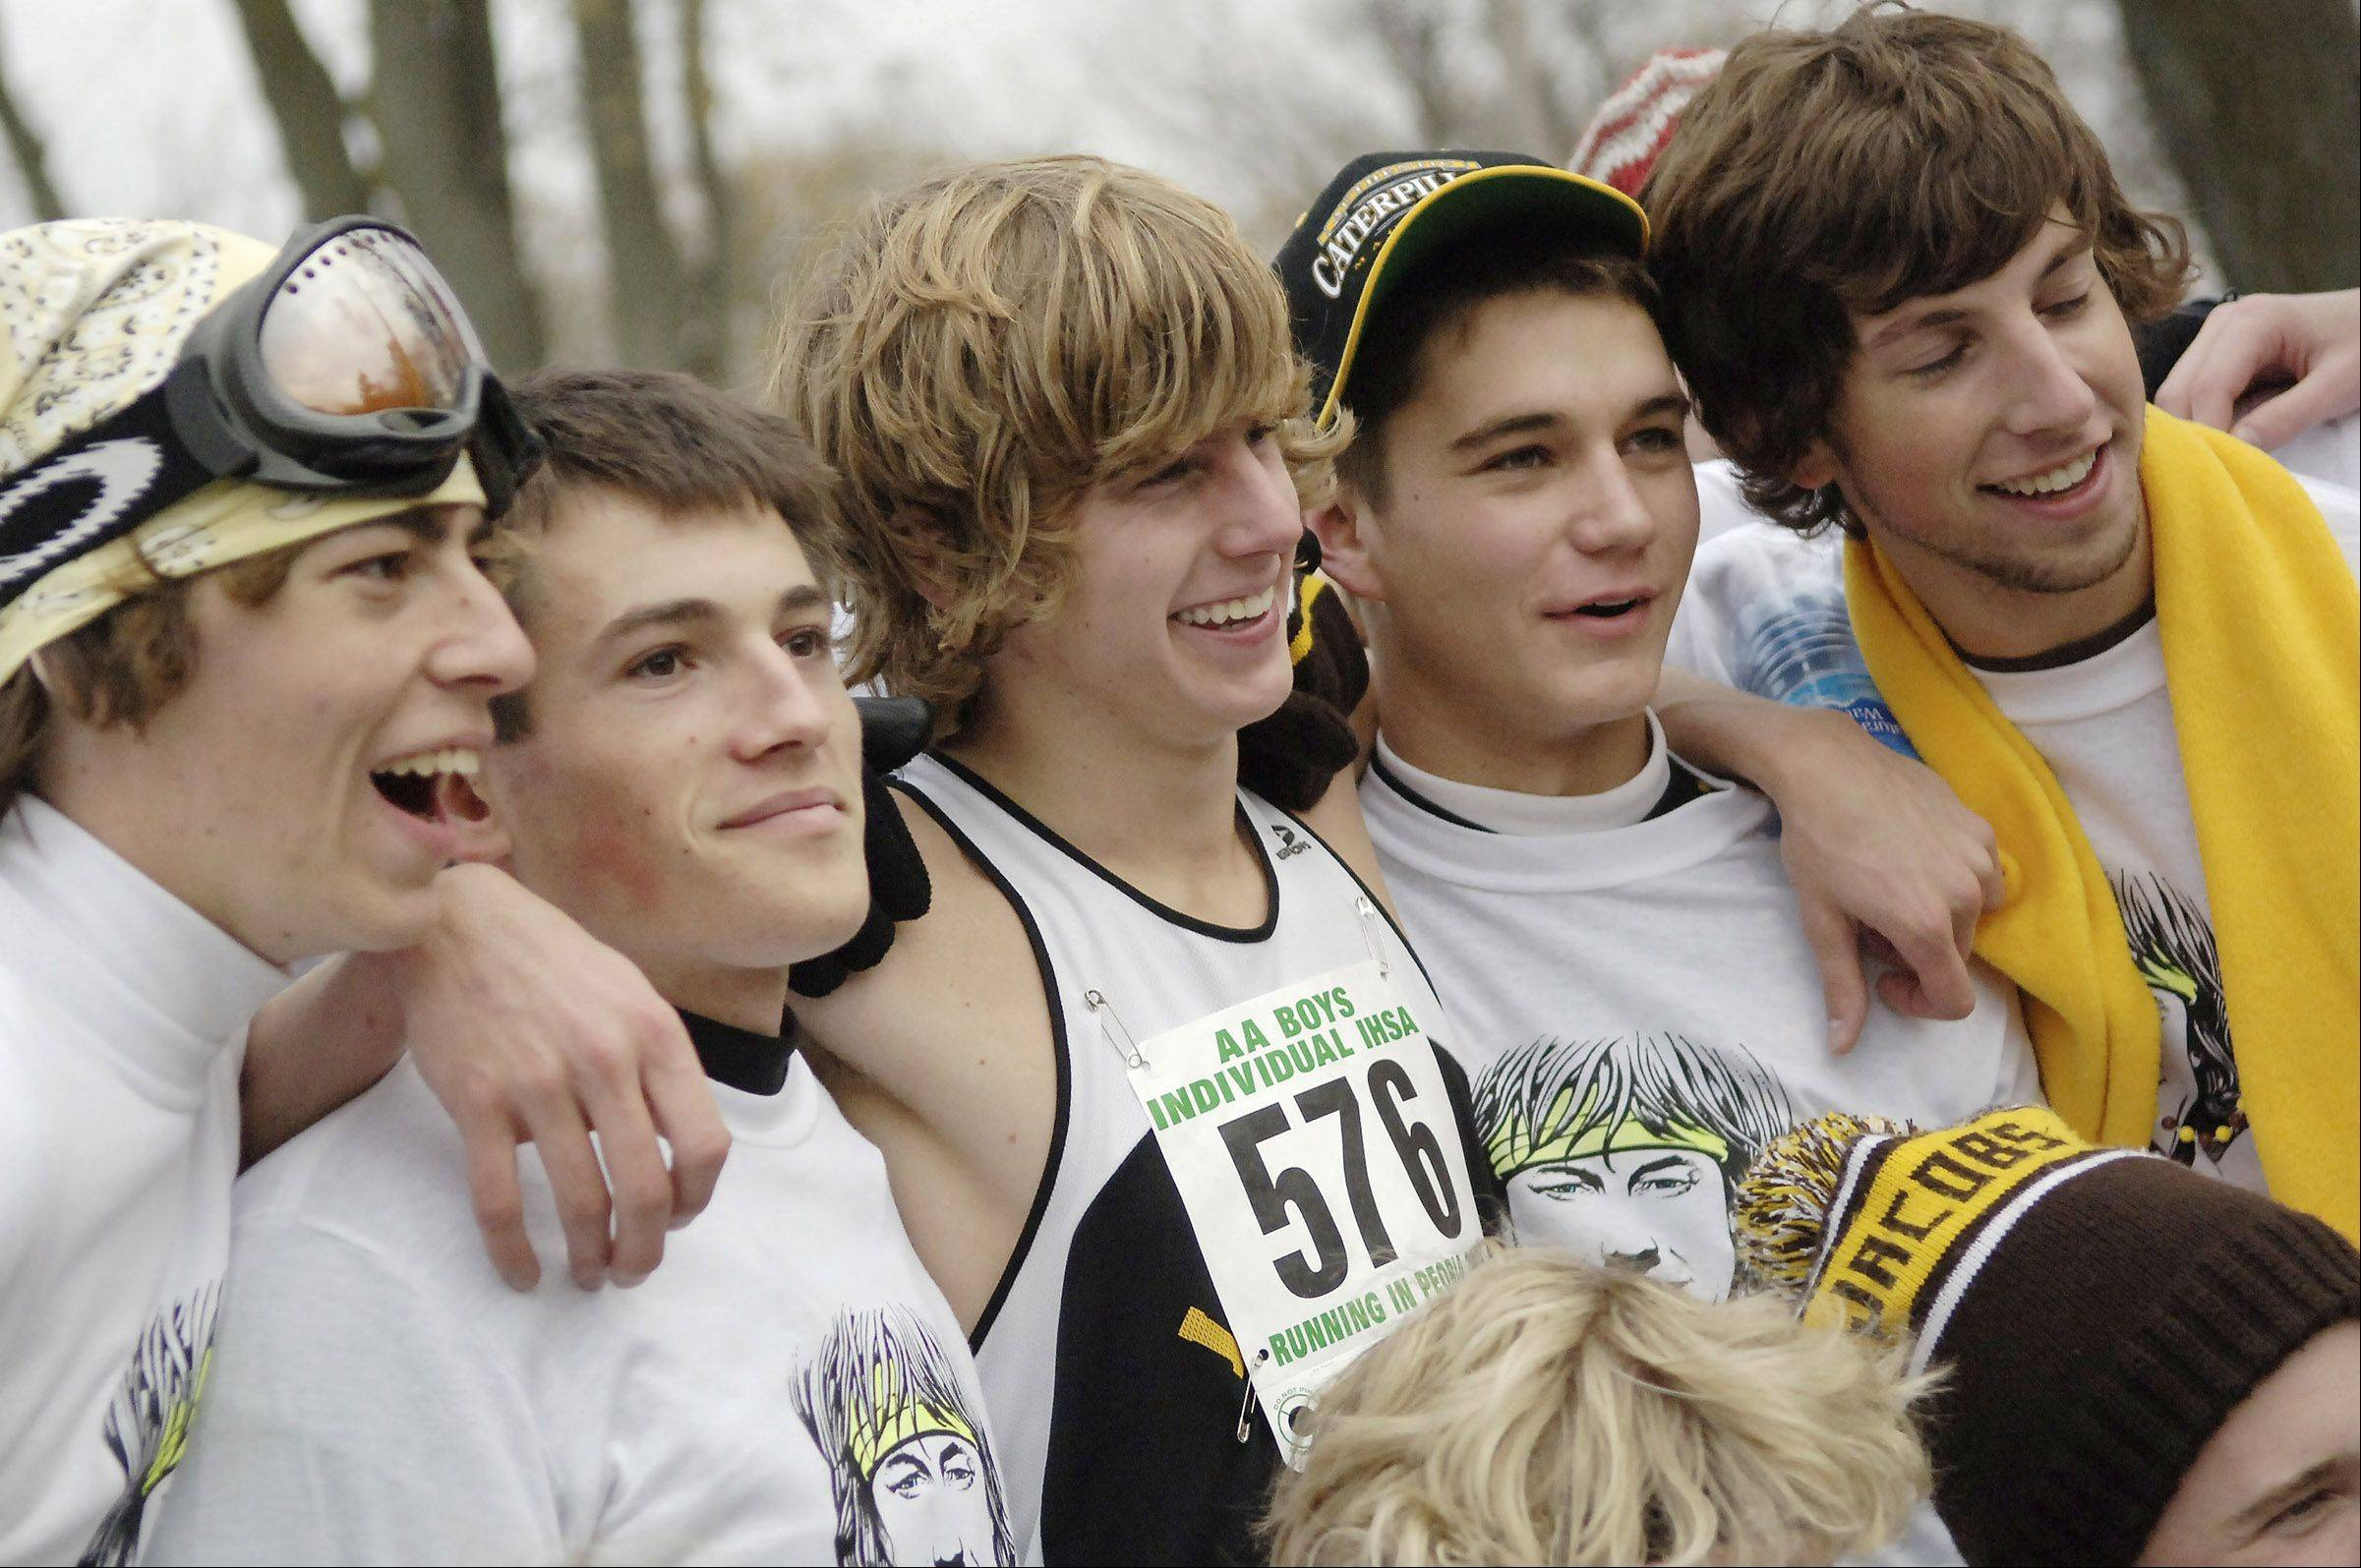 Evan Jager, center, is flanked by friends and supporters after his state cross country title win in Peoria.